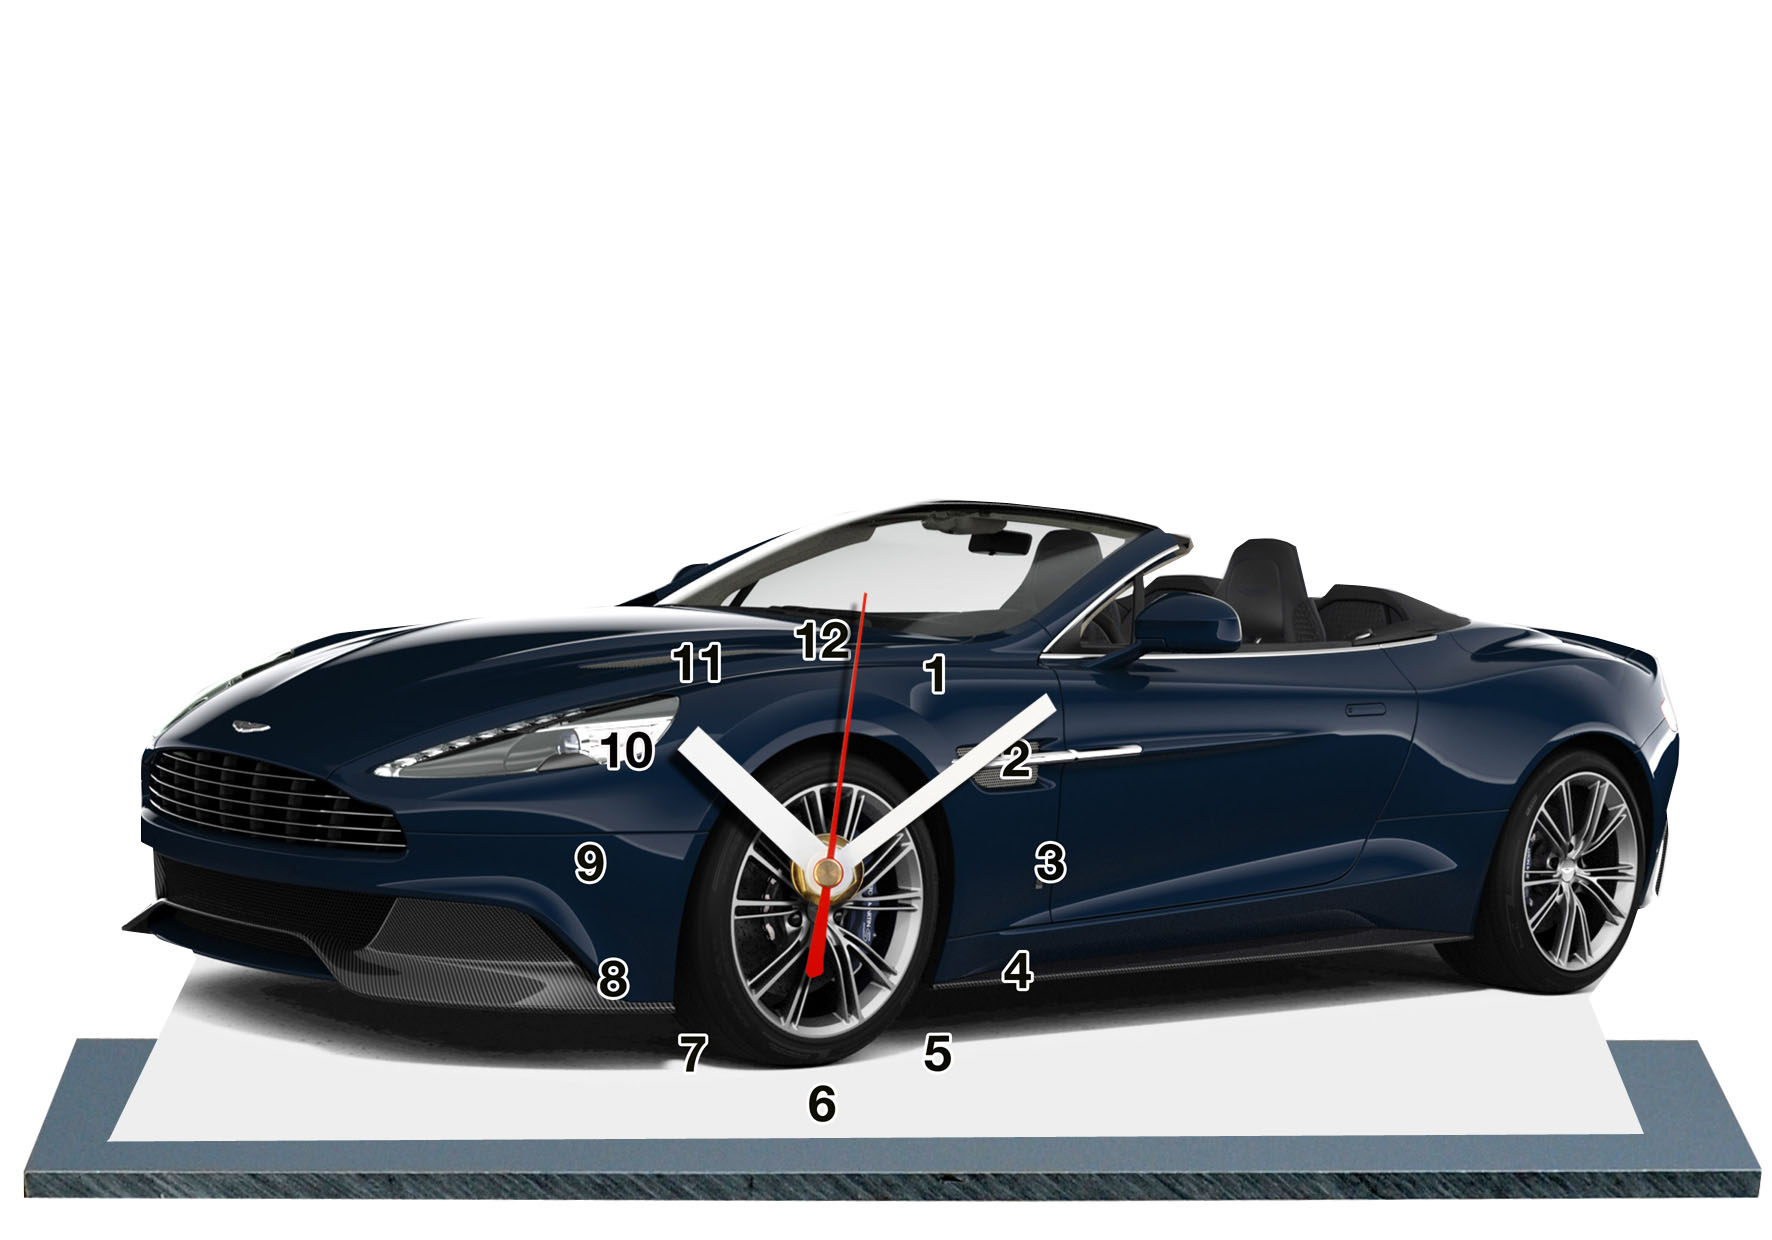 aston martin cabriolet en auto horloge style miniature. Black Bedroom Furniture Sets. Home Design Ideas